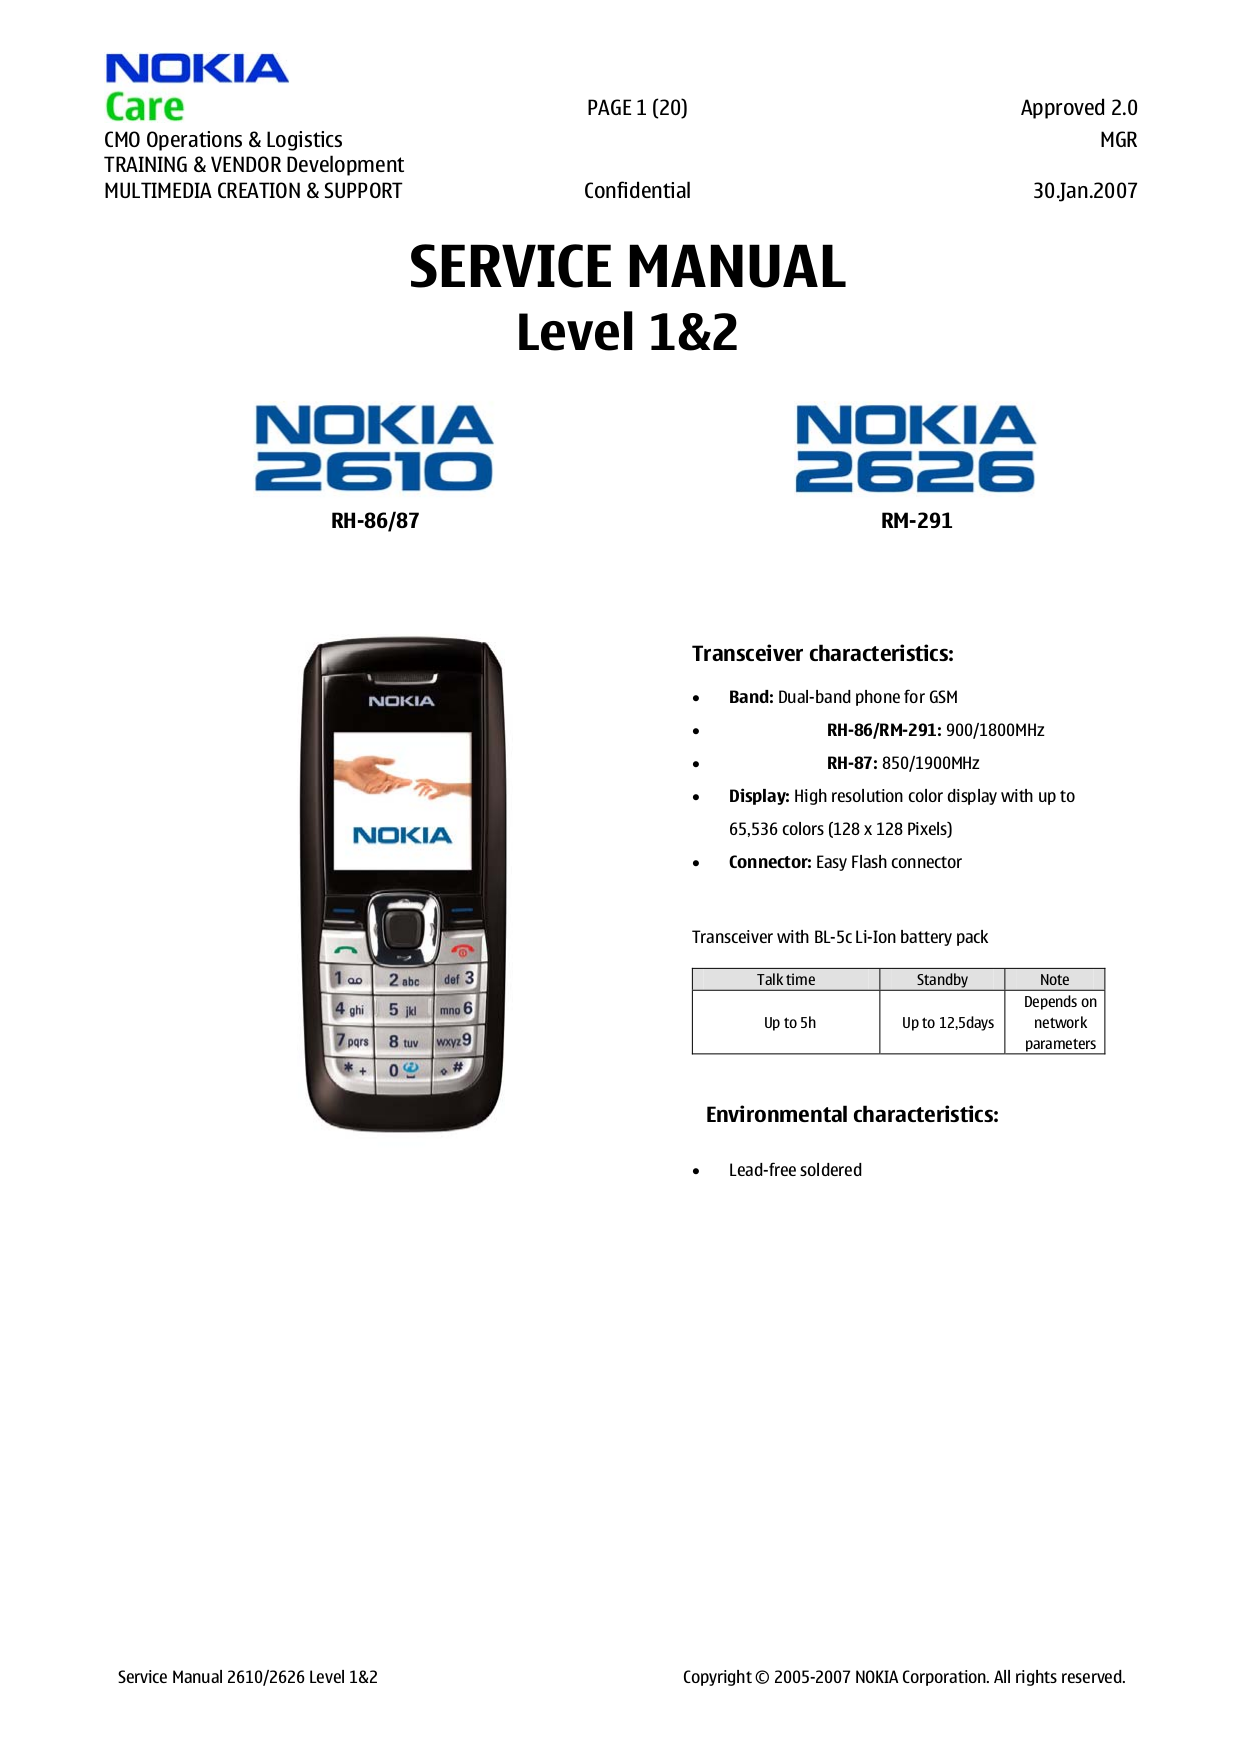 download free pdf for nokia 2610 cell phone manual